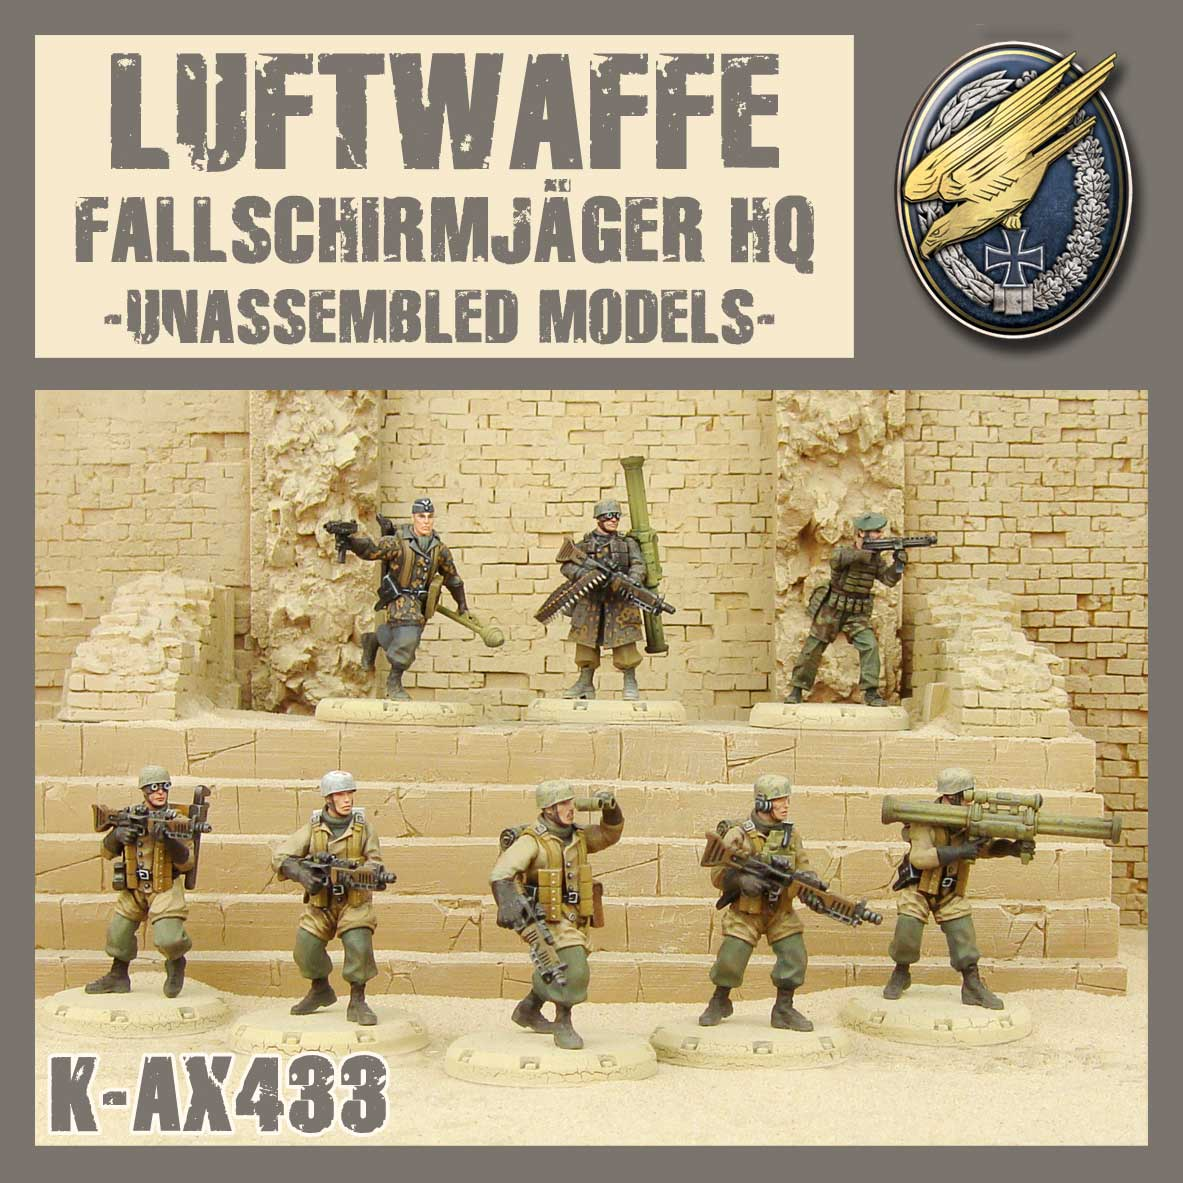 Fallschirmjager HQ Kit